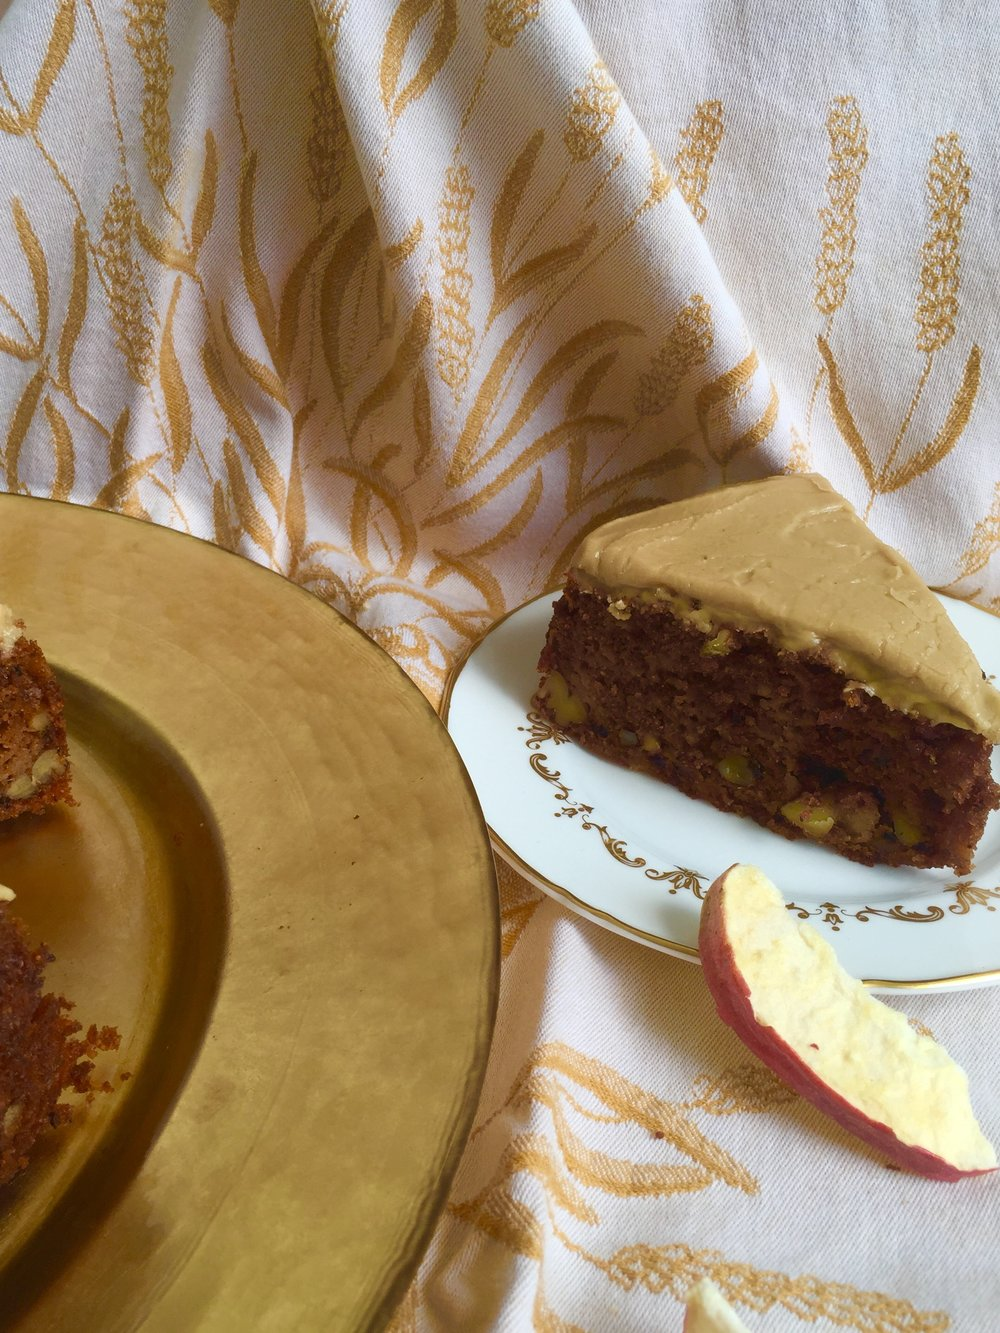 This is a delicious old fashioned cake and an old fashioned photo - I pulled out my mother's wedding china for this shot.